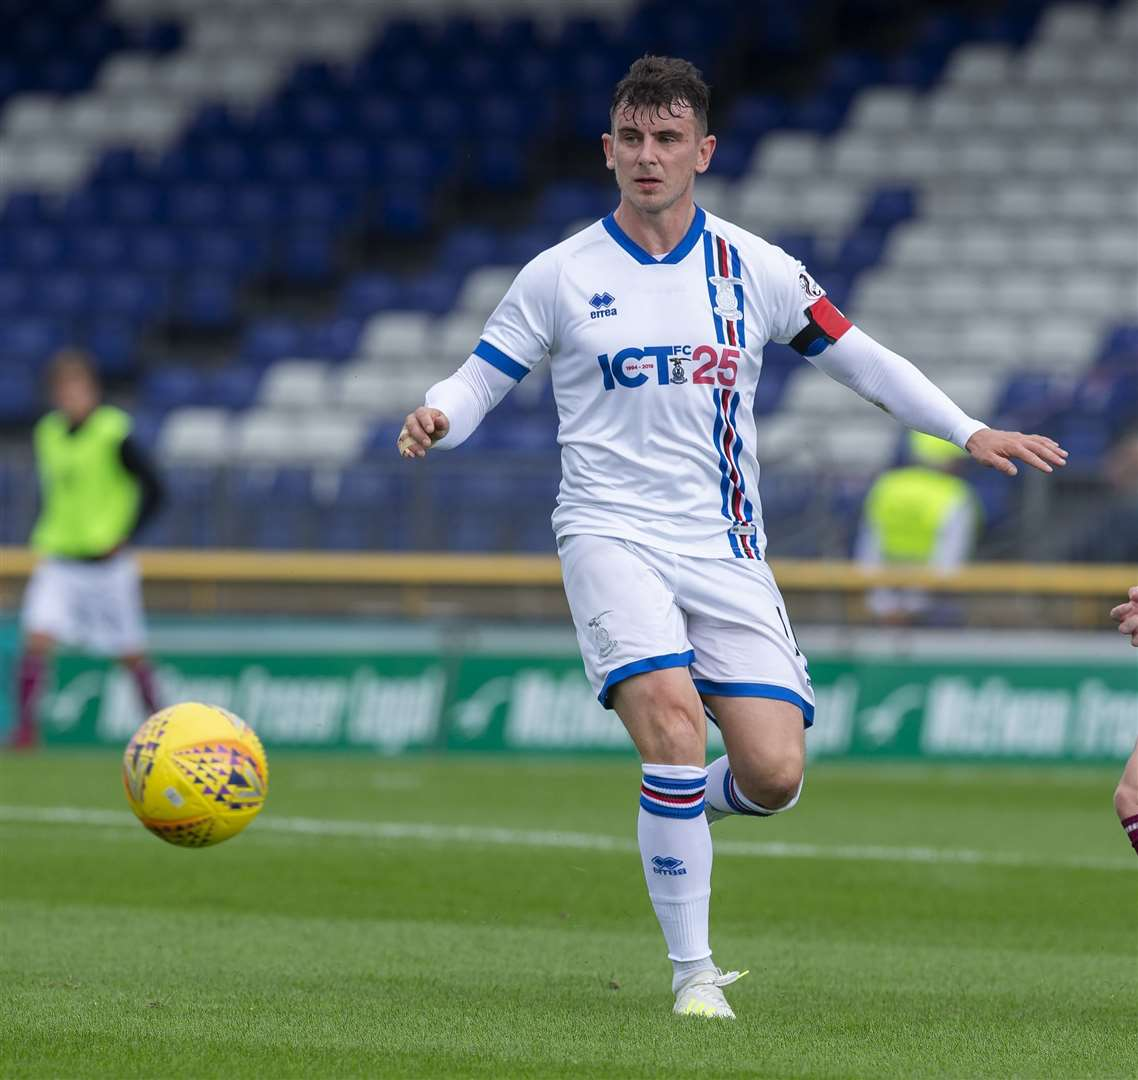 Inverness Caledonian Thistle vice-captain Aaron Doran believes their squad is much stronger compared to last season. Picture: Ken Macpherson